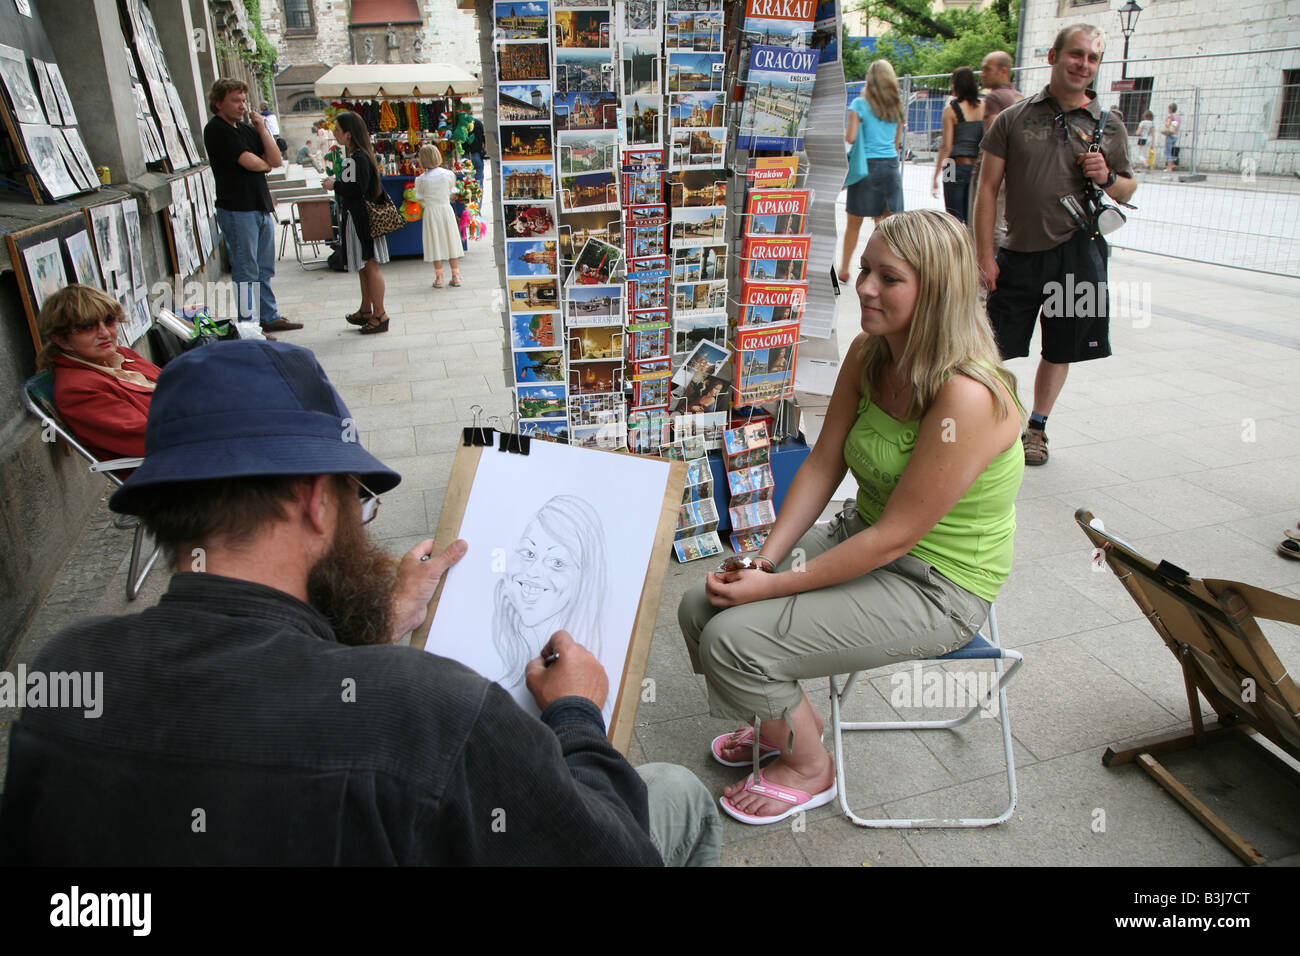 Street artist drawing a caricature,  Cracow Poland - Stock Image